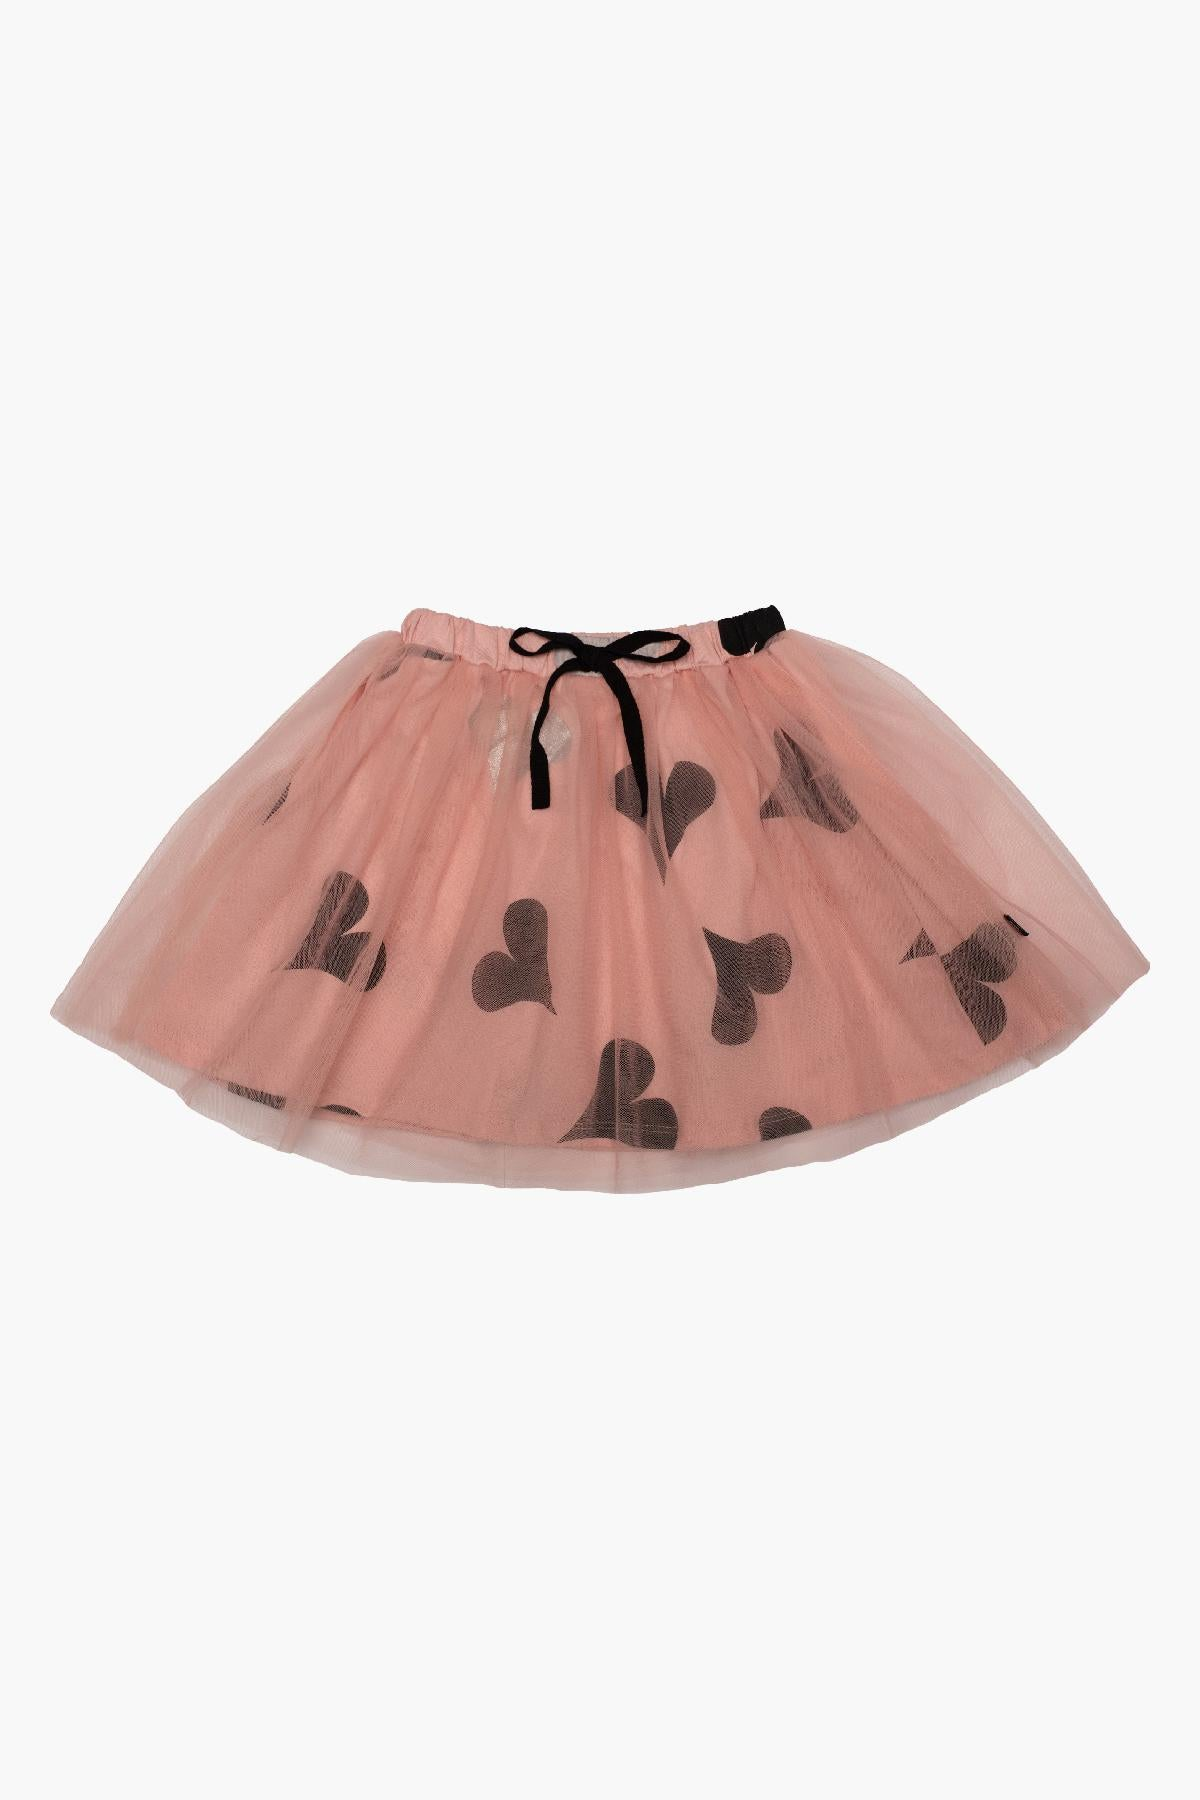 Old Soles Groove is in The Heart Tutu Girls Skirt